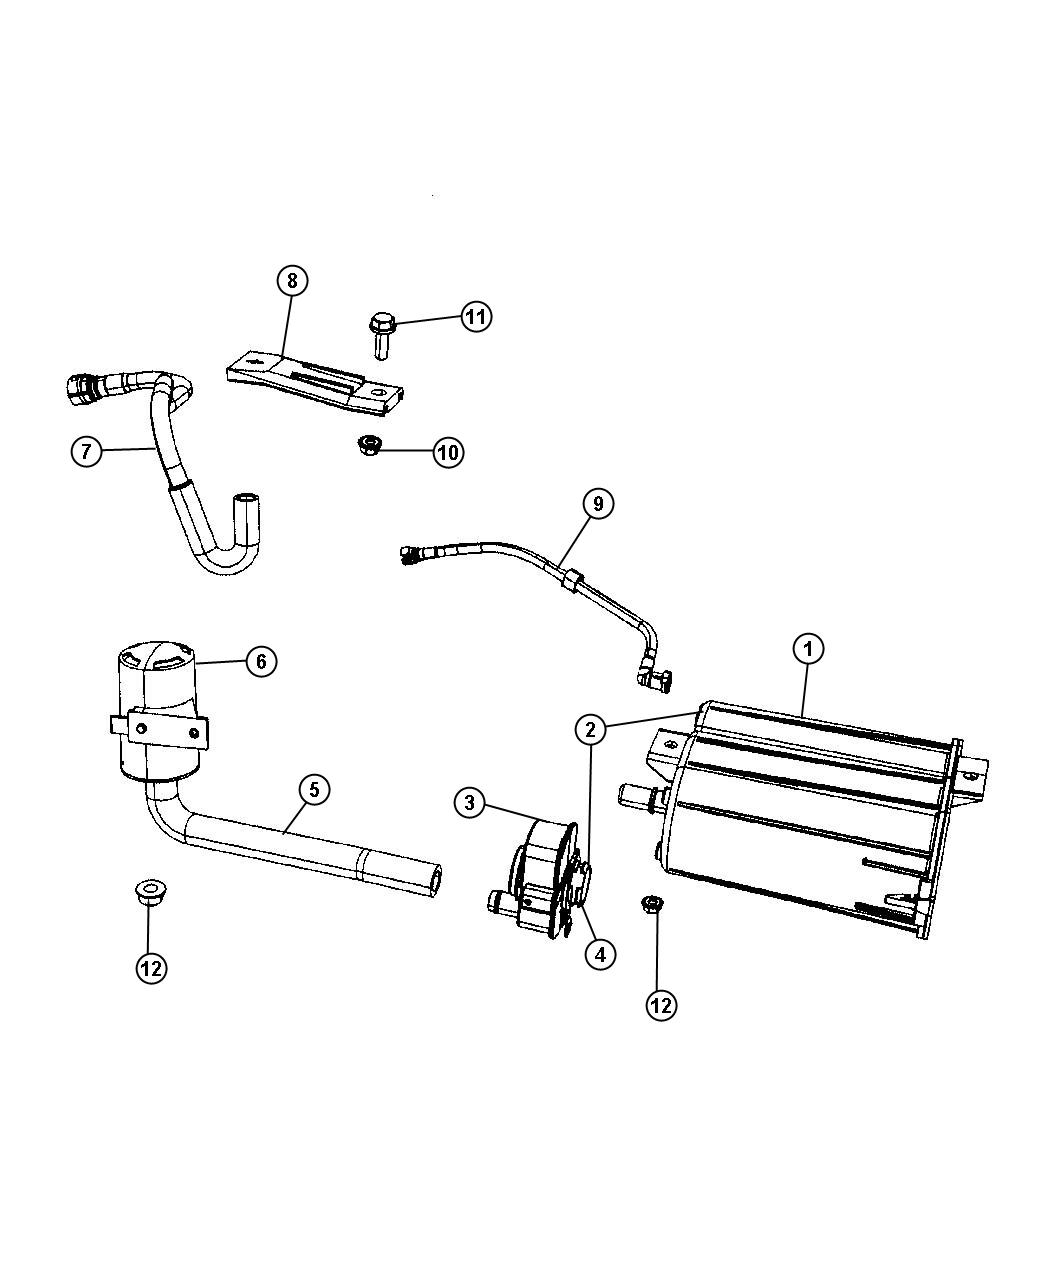 2007 suburban fuel filter location